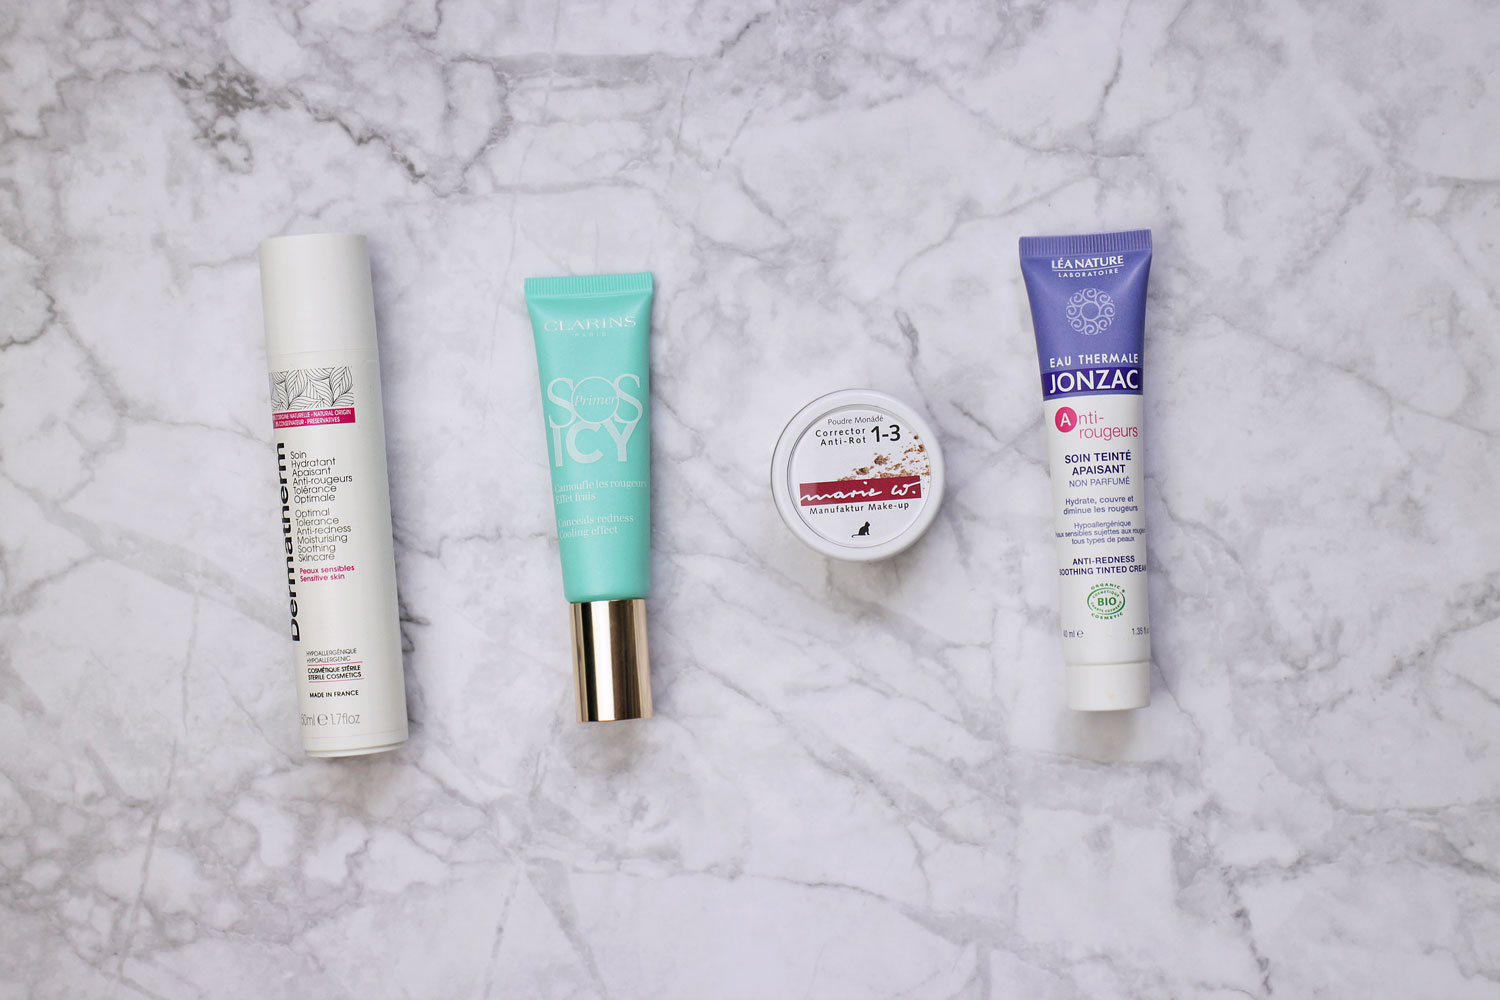 Beauty Trends 2021 Beauty Briefing